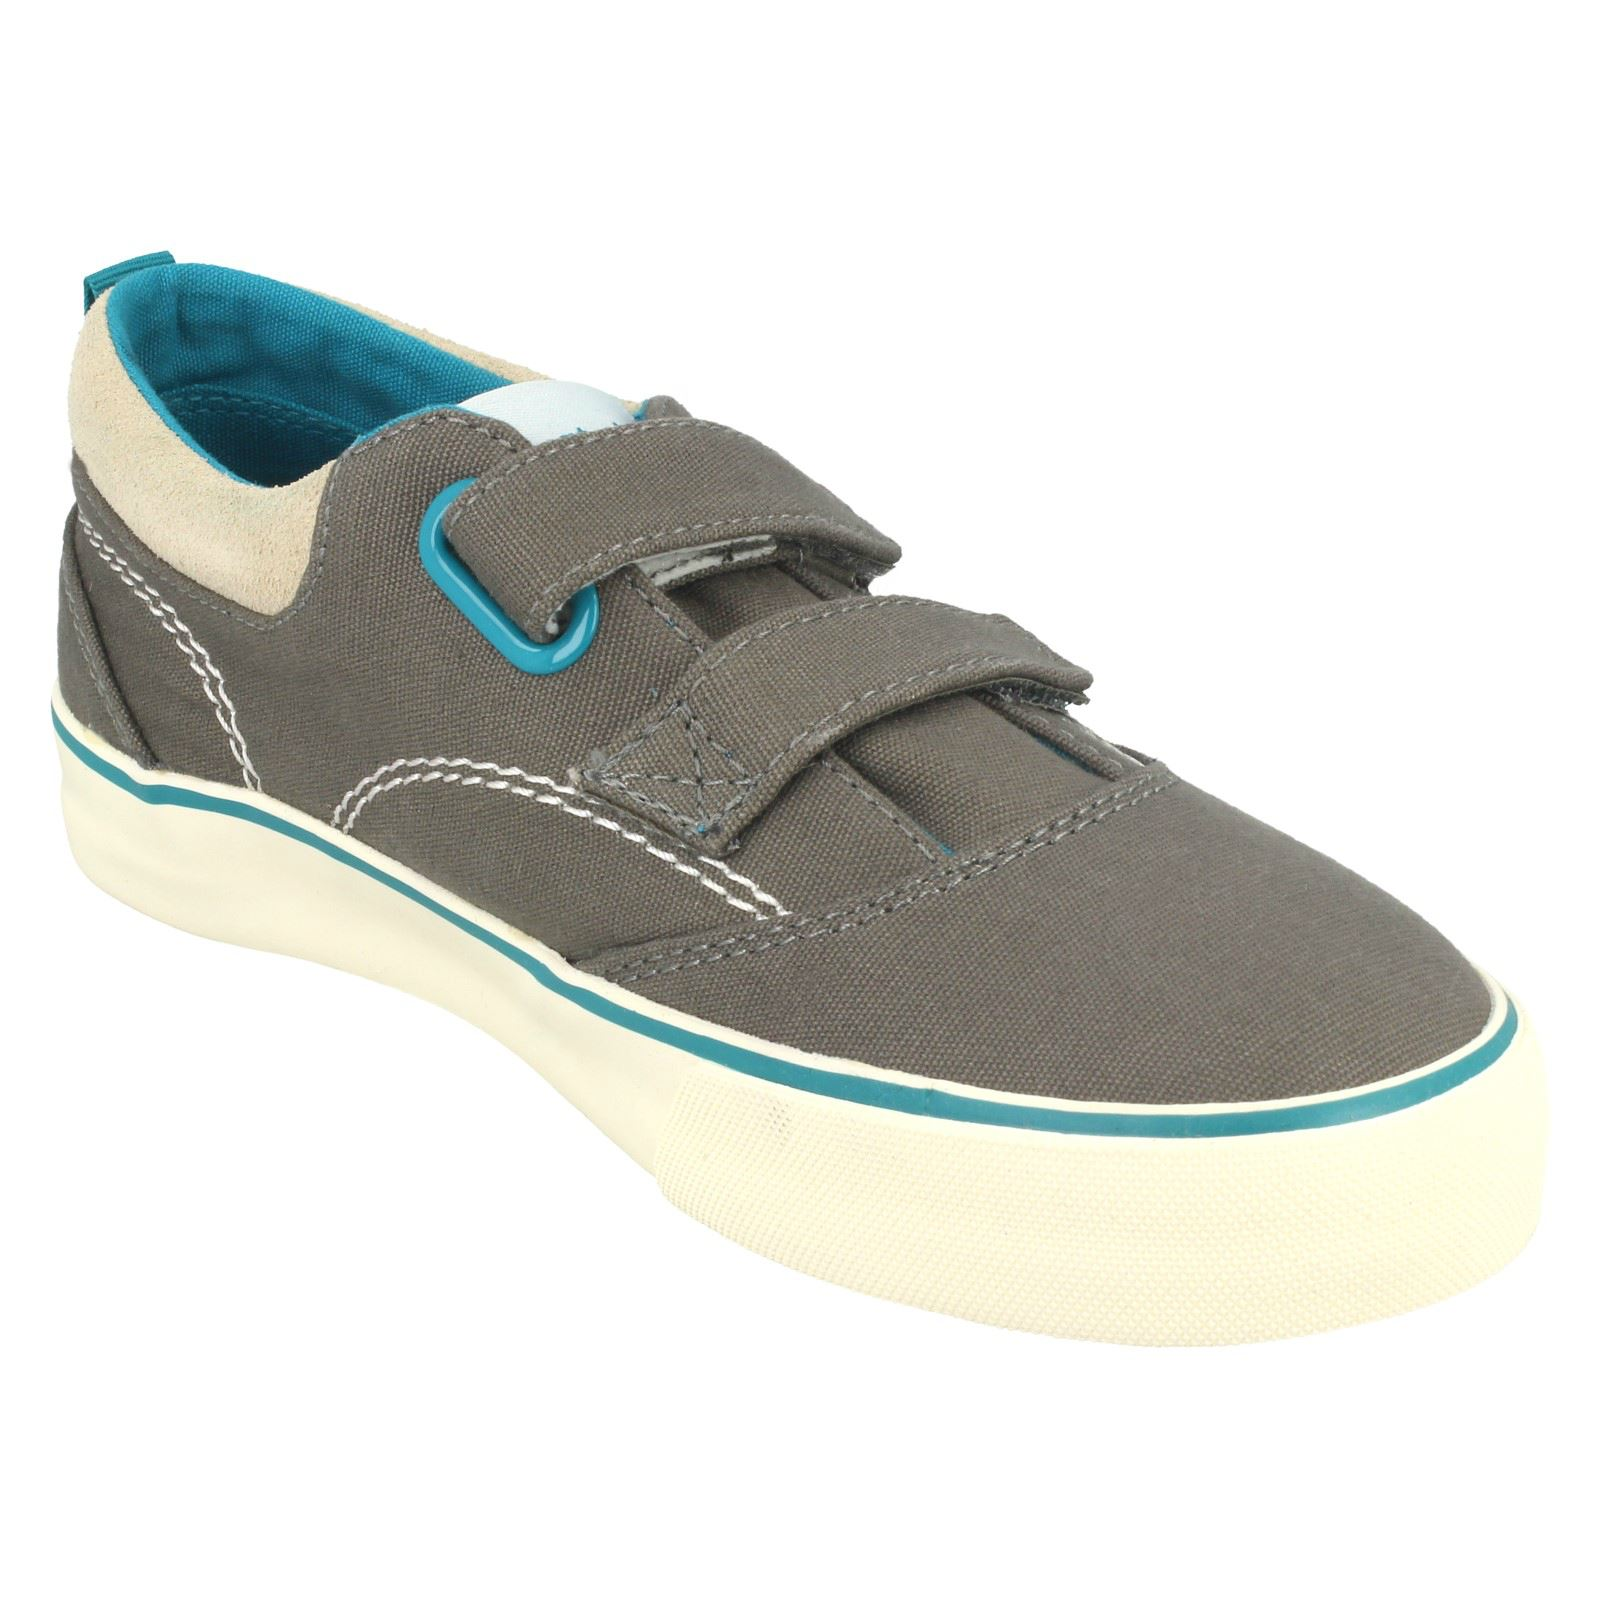 Boys Startrite Hook & Loop Fastening Rounded Toe Summer Canvas Shoes Dinghy